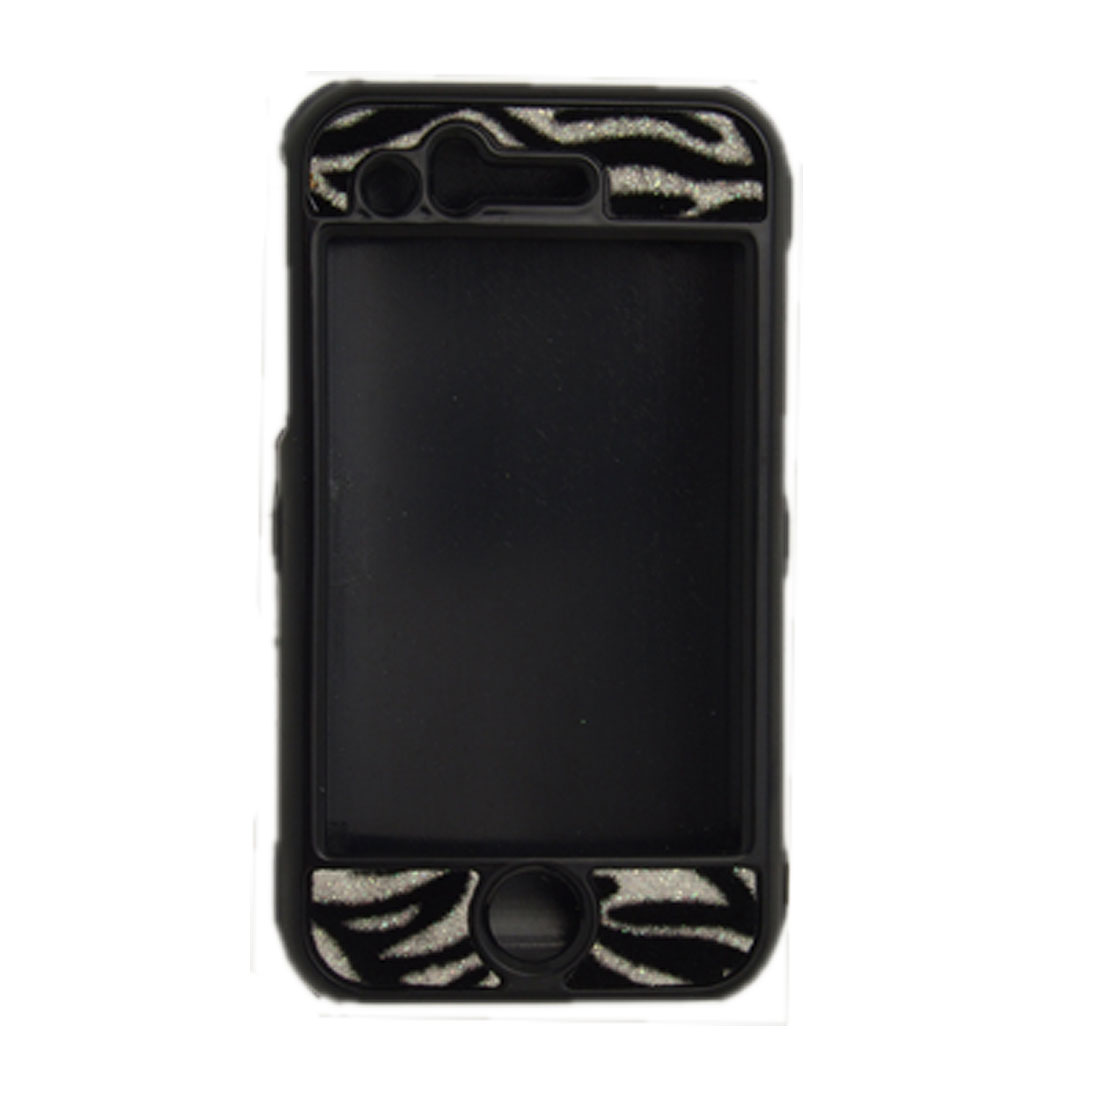 Protective Hard Plastic Case Cover for Apple iPhone 3G / 3GS